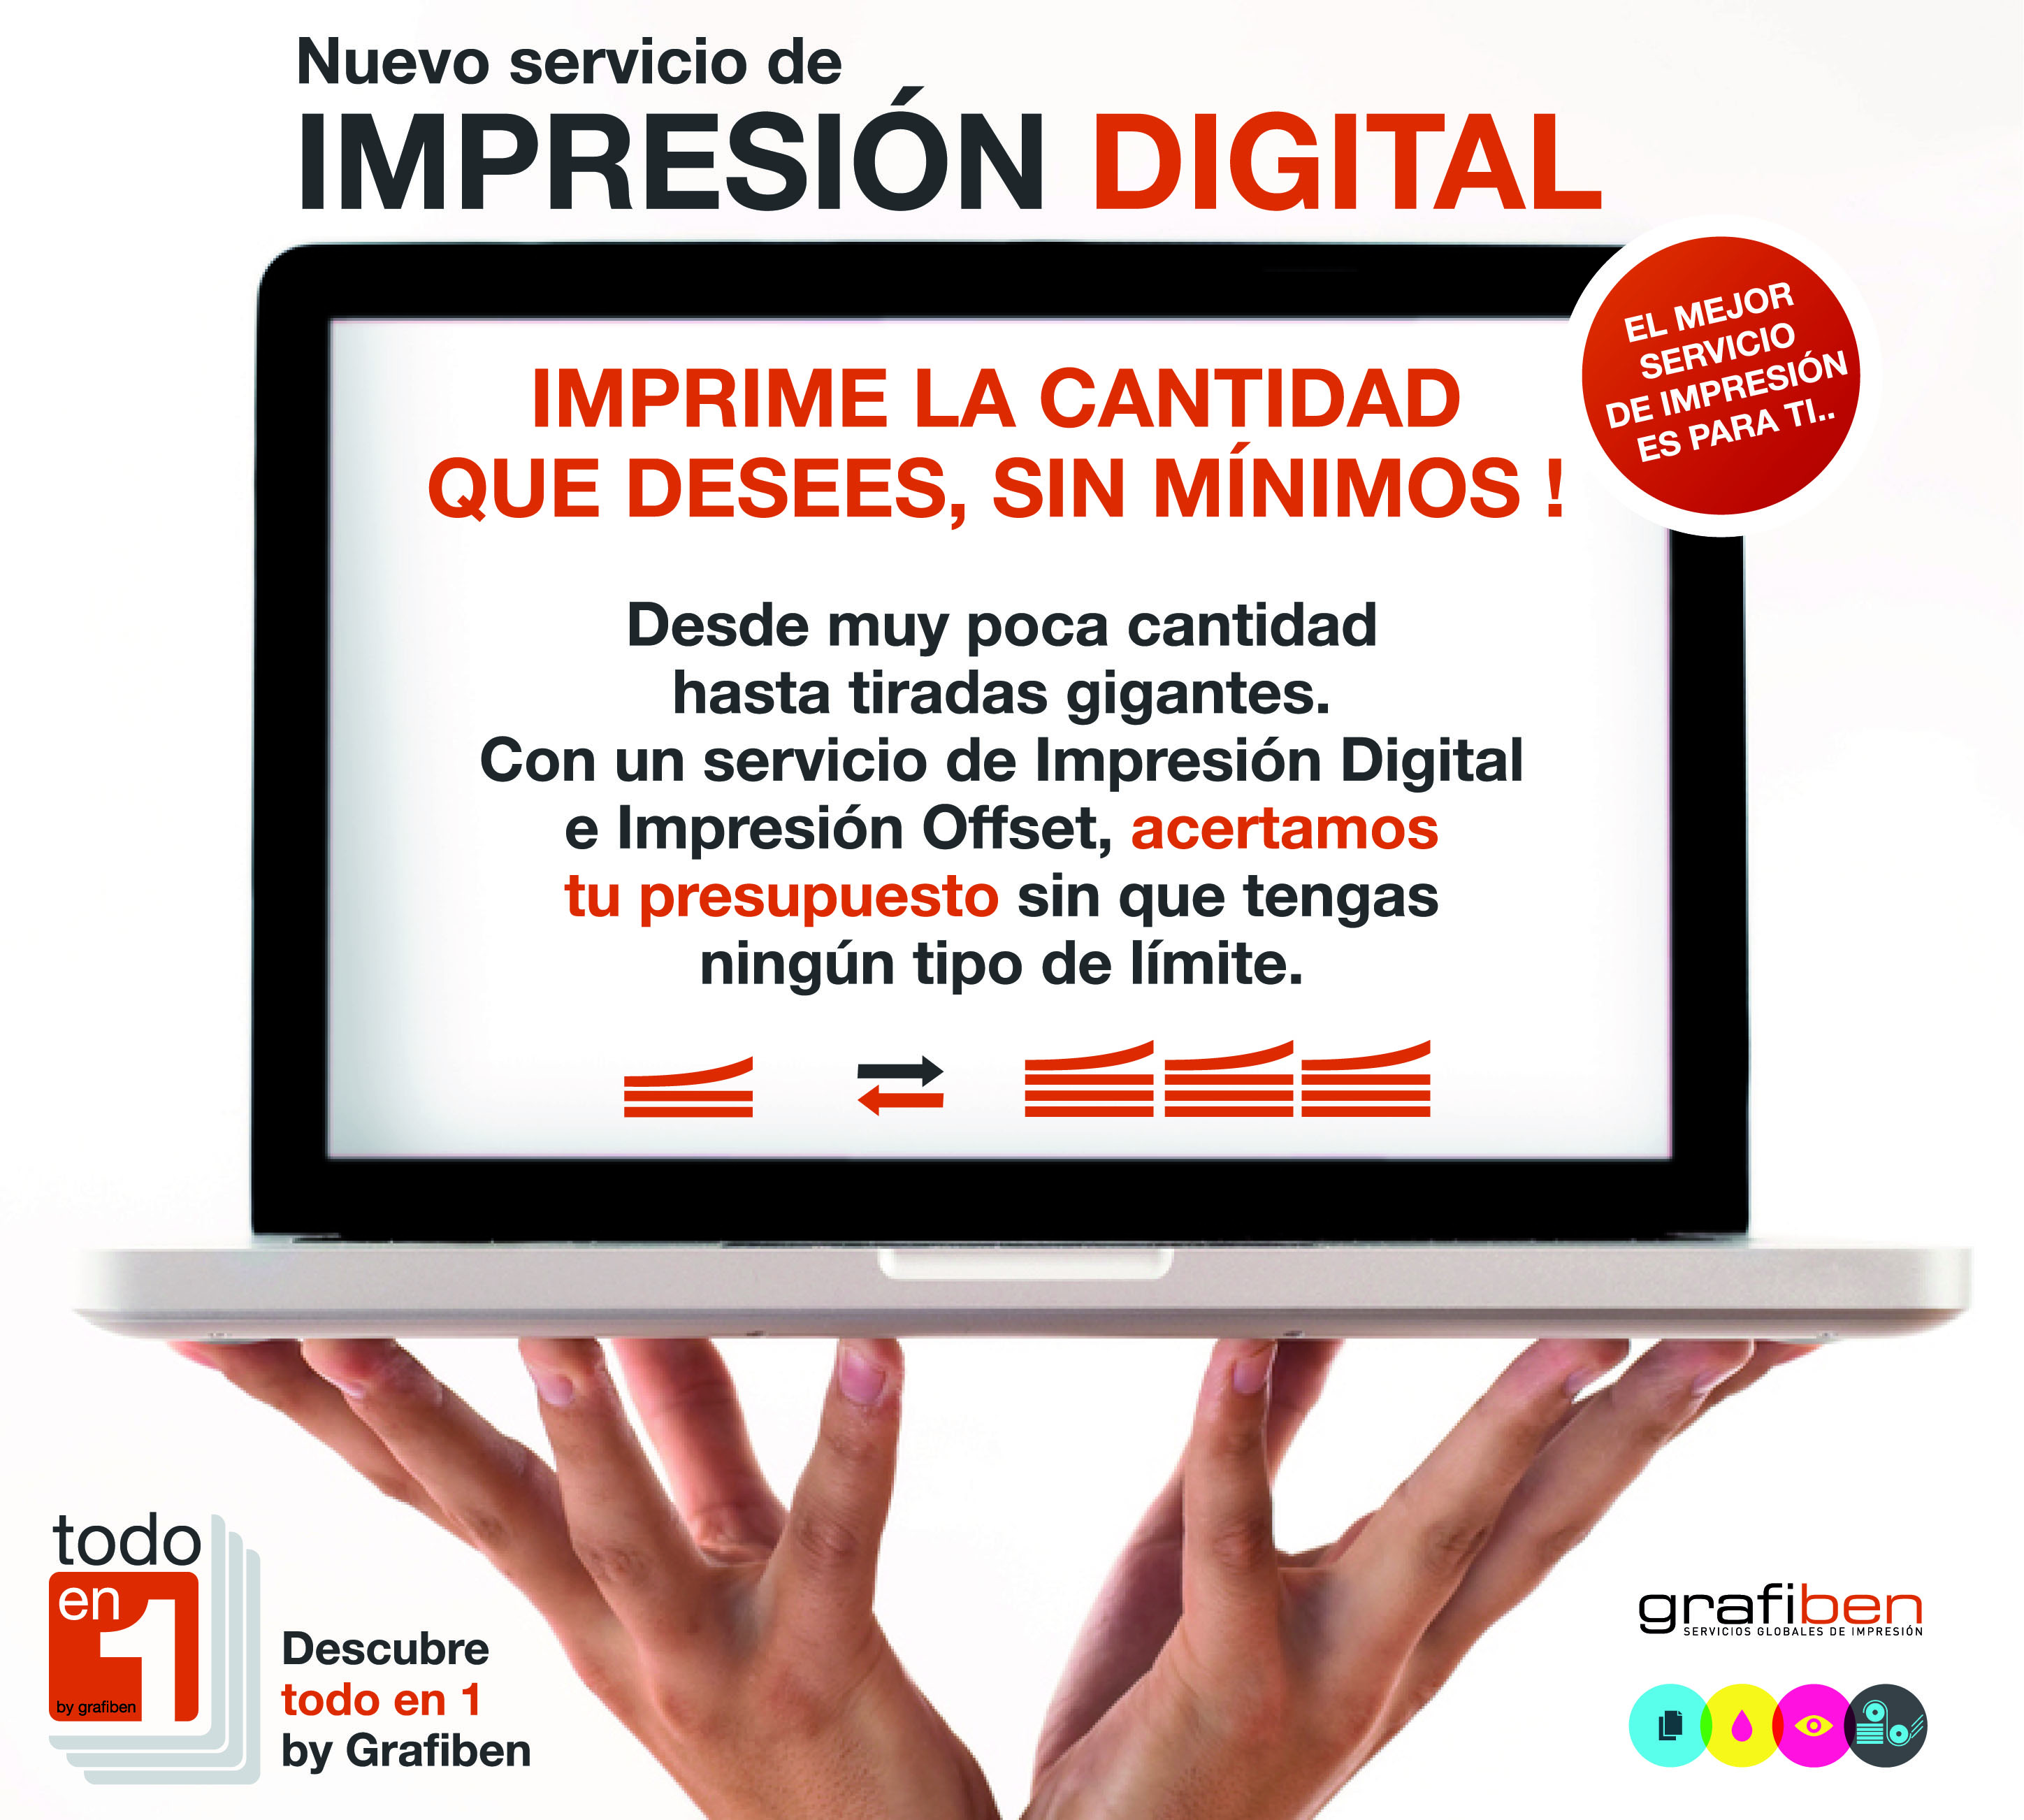 imprenta digital-valencia